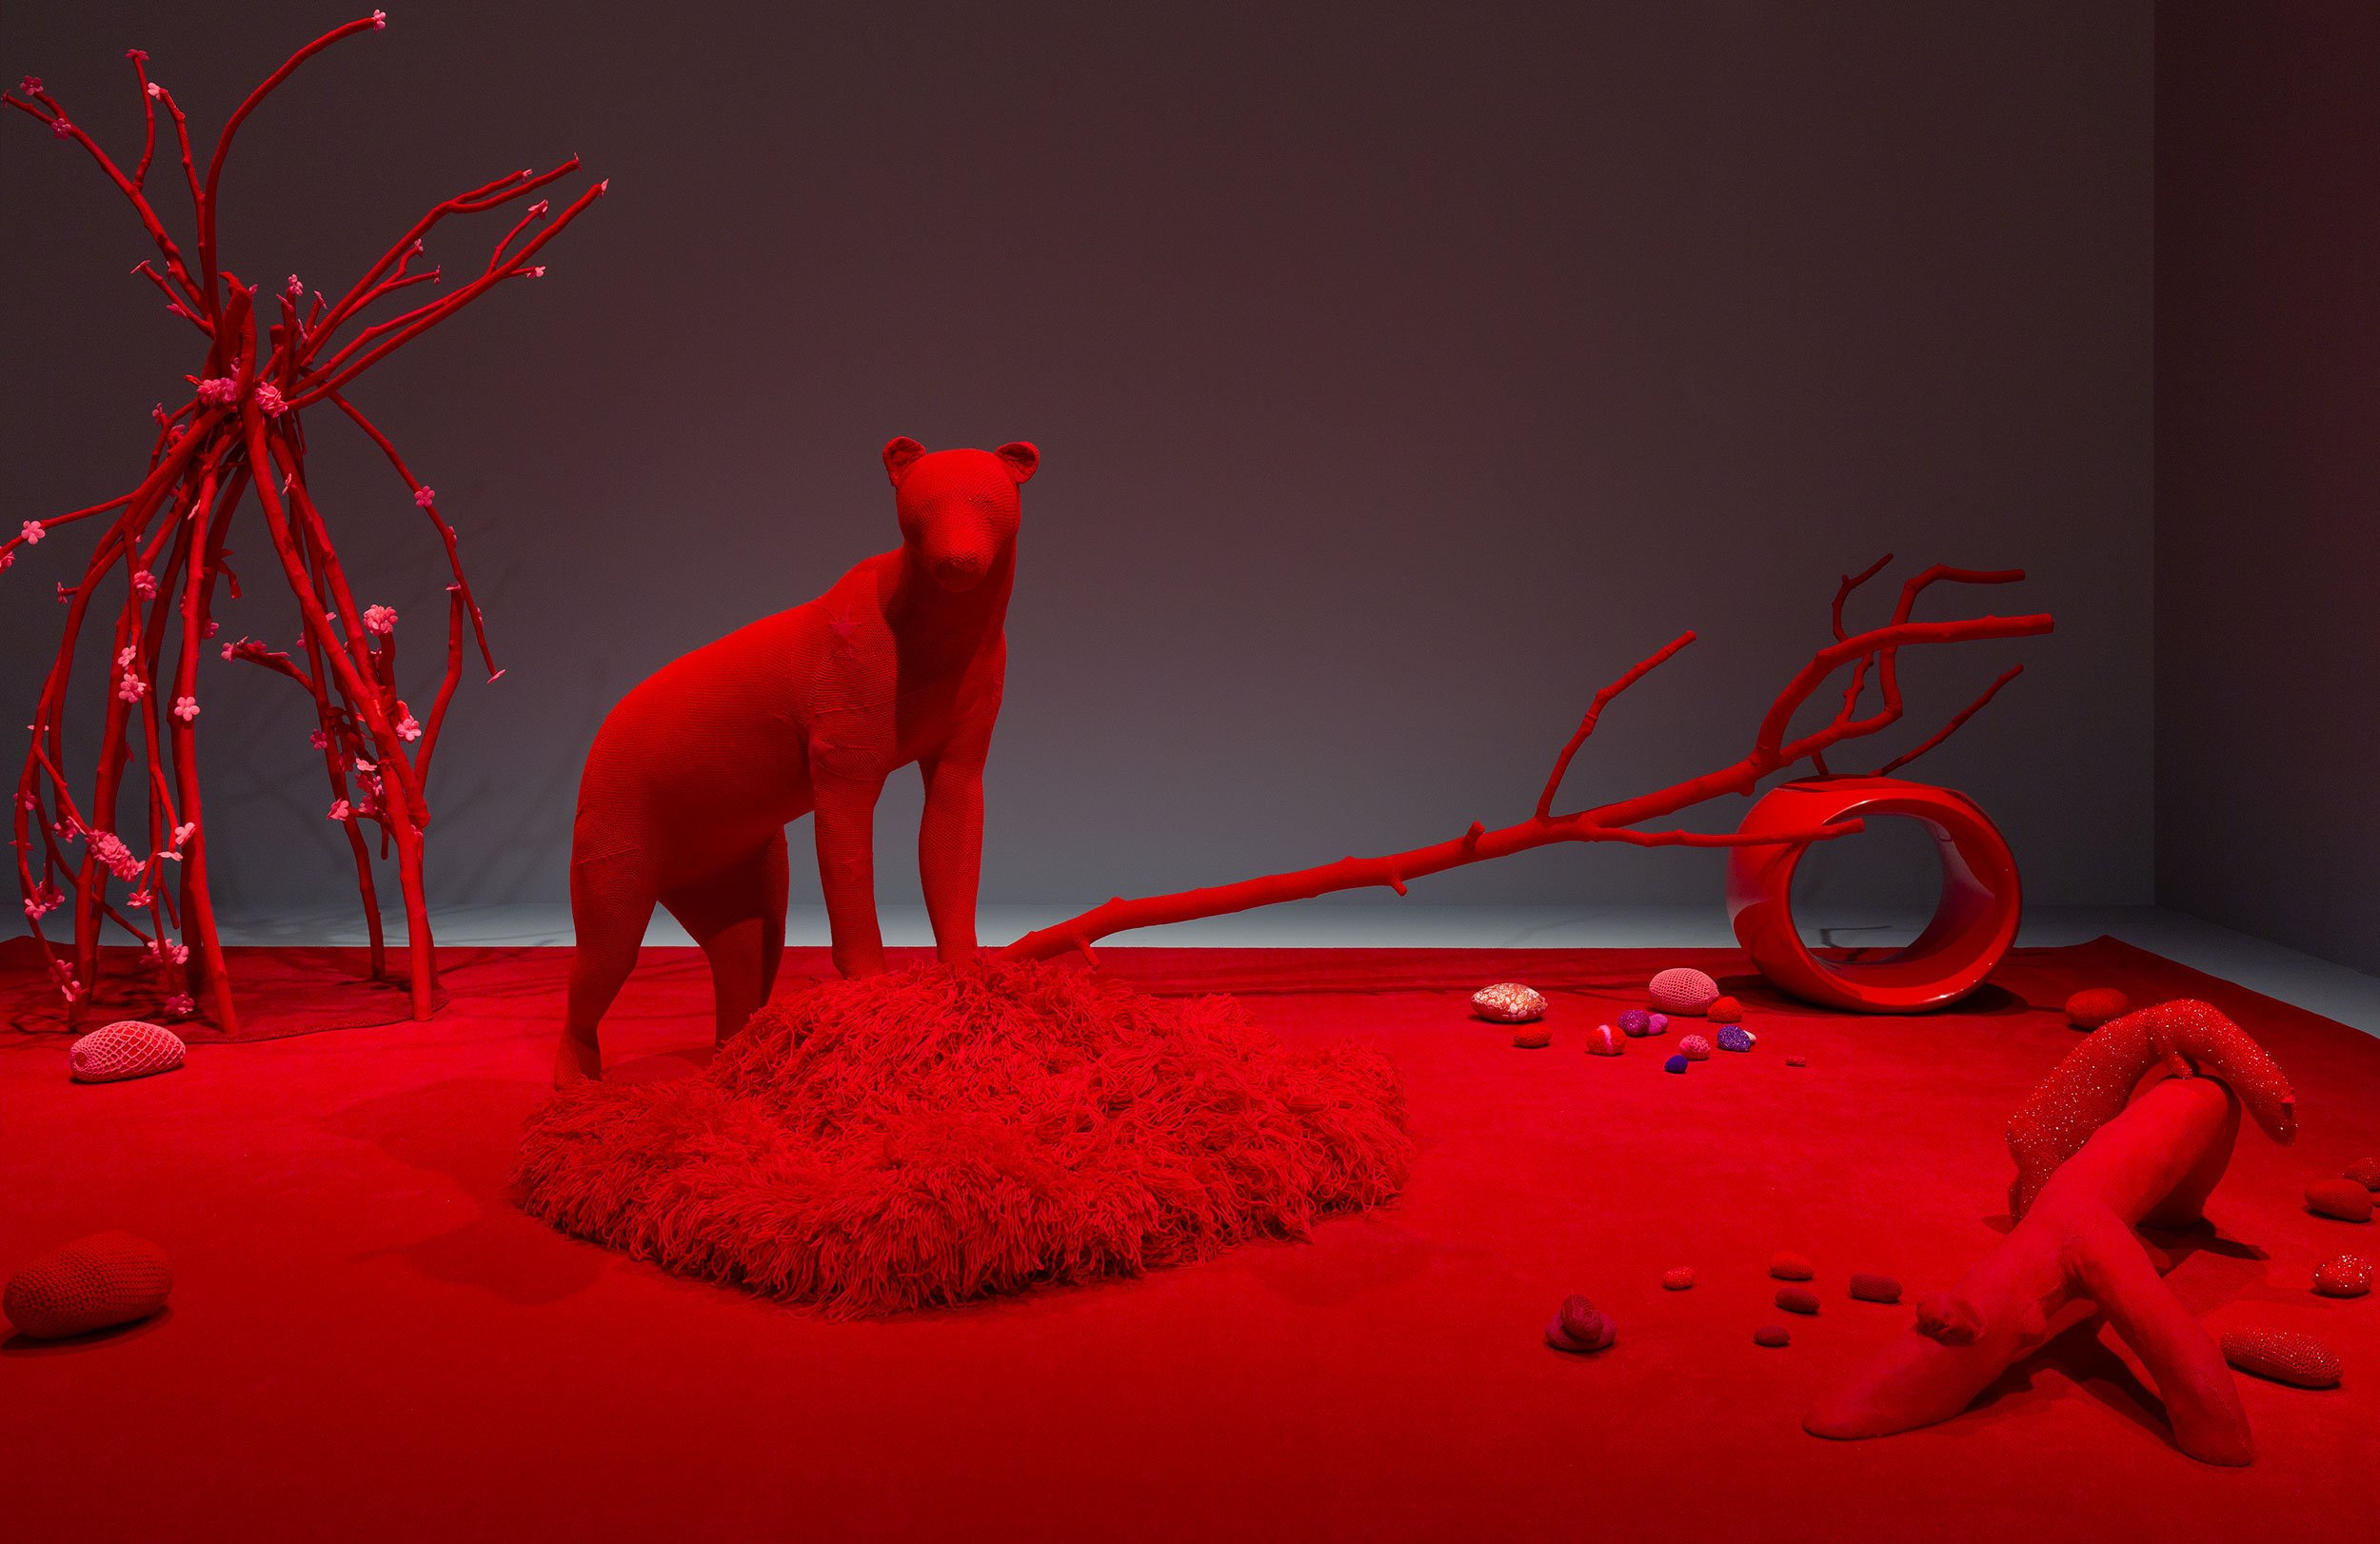 Installation artwork of a red carpet with an assortment of red crocheted objects and animals (including a bear-like creature, a squirrel and a ferret-like creature) sitting on top.